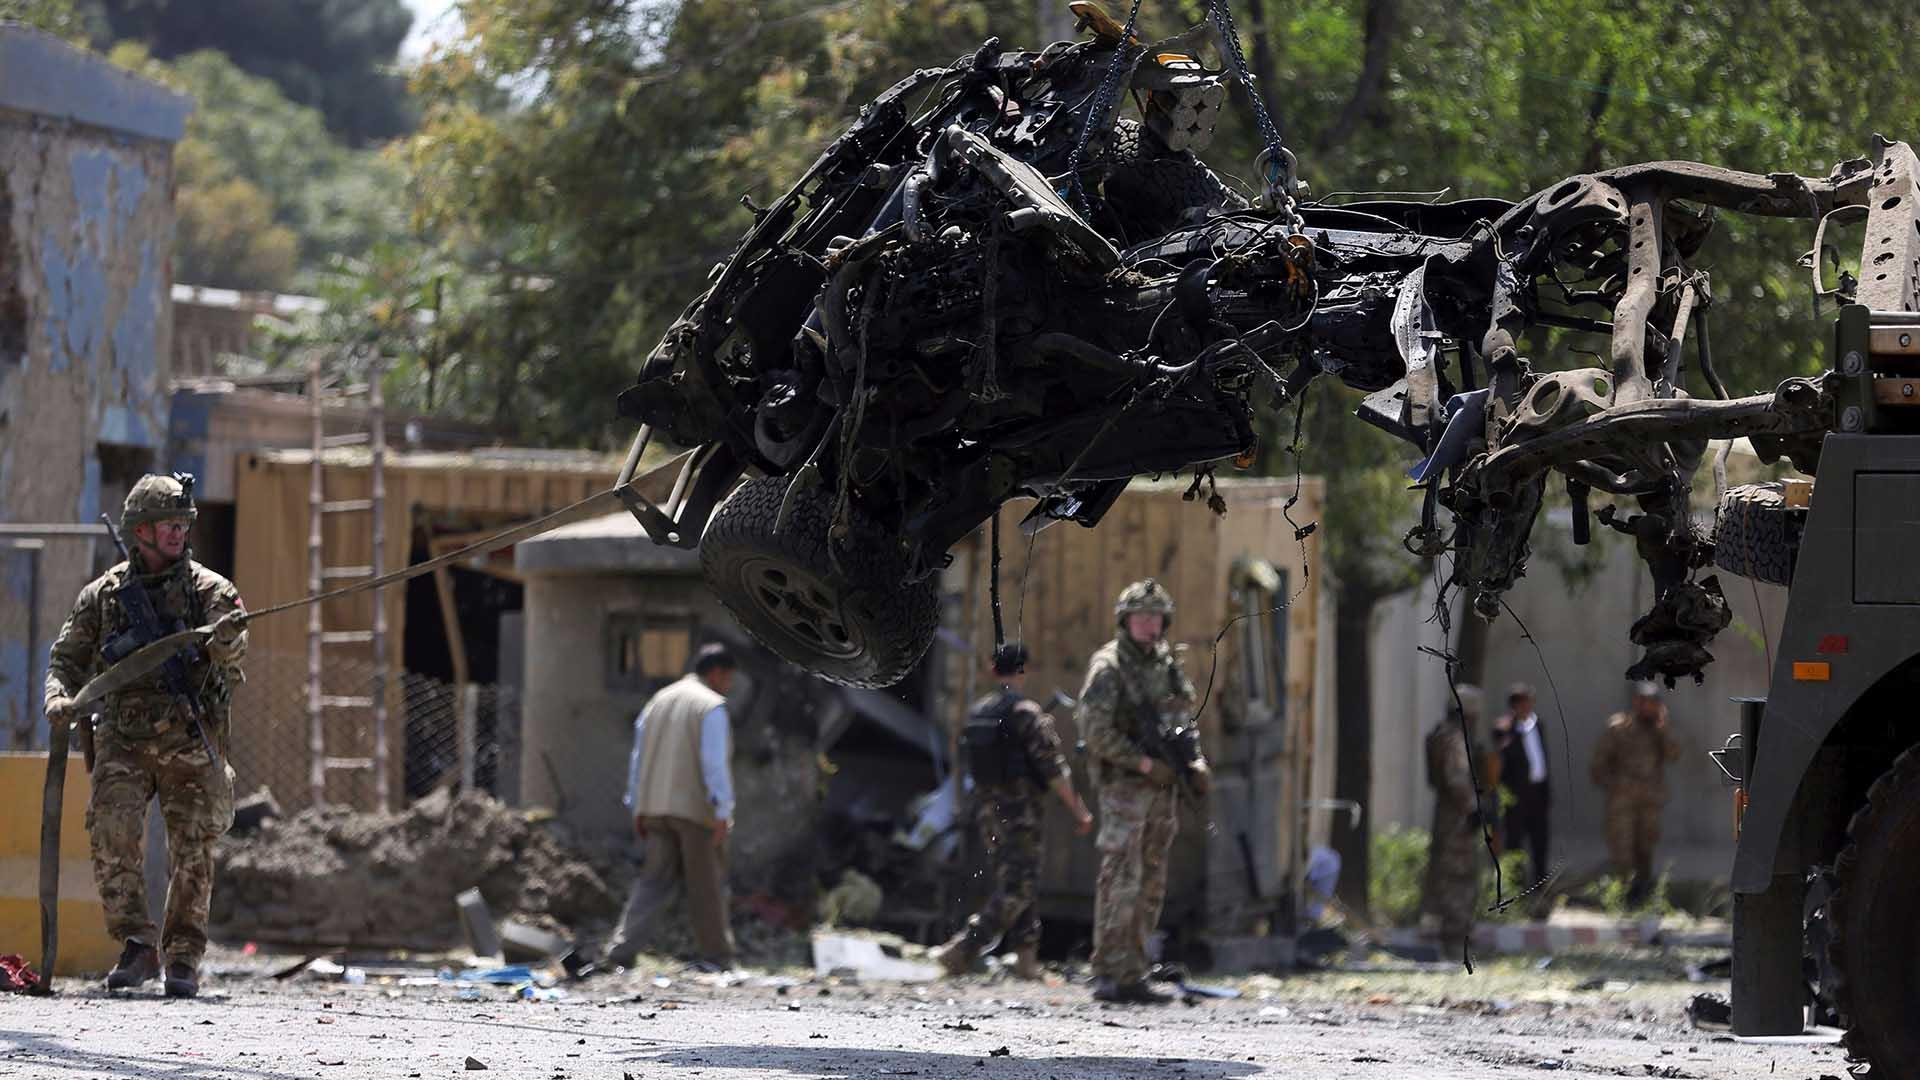 U.S. service member killed in Taliban suicide bombing near American Embassy in Kabul